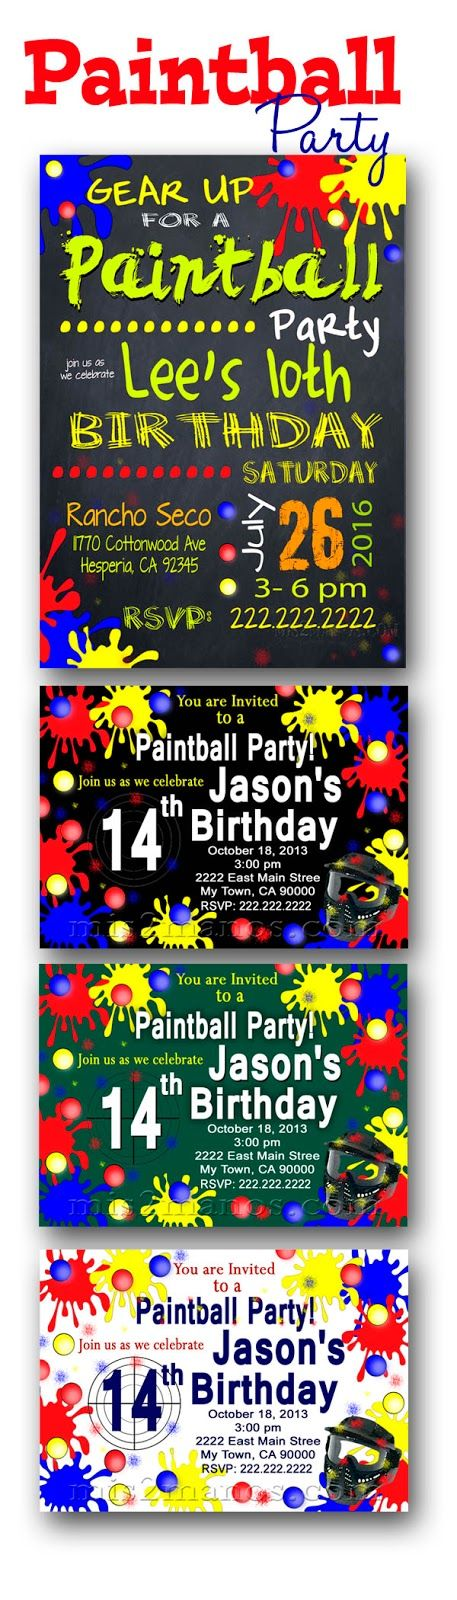 free printable paintball party invitations | paintball party, Party invitations